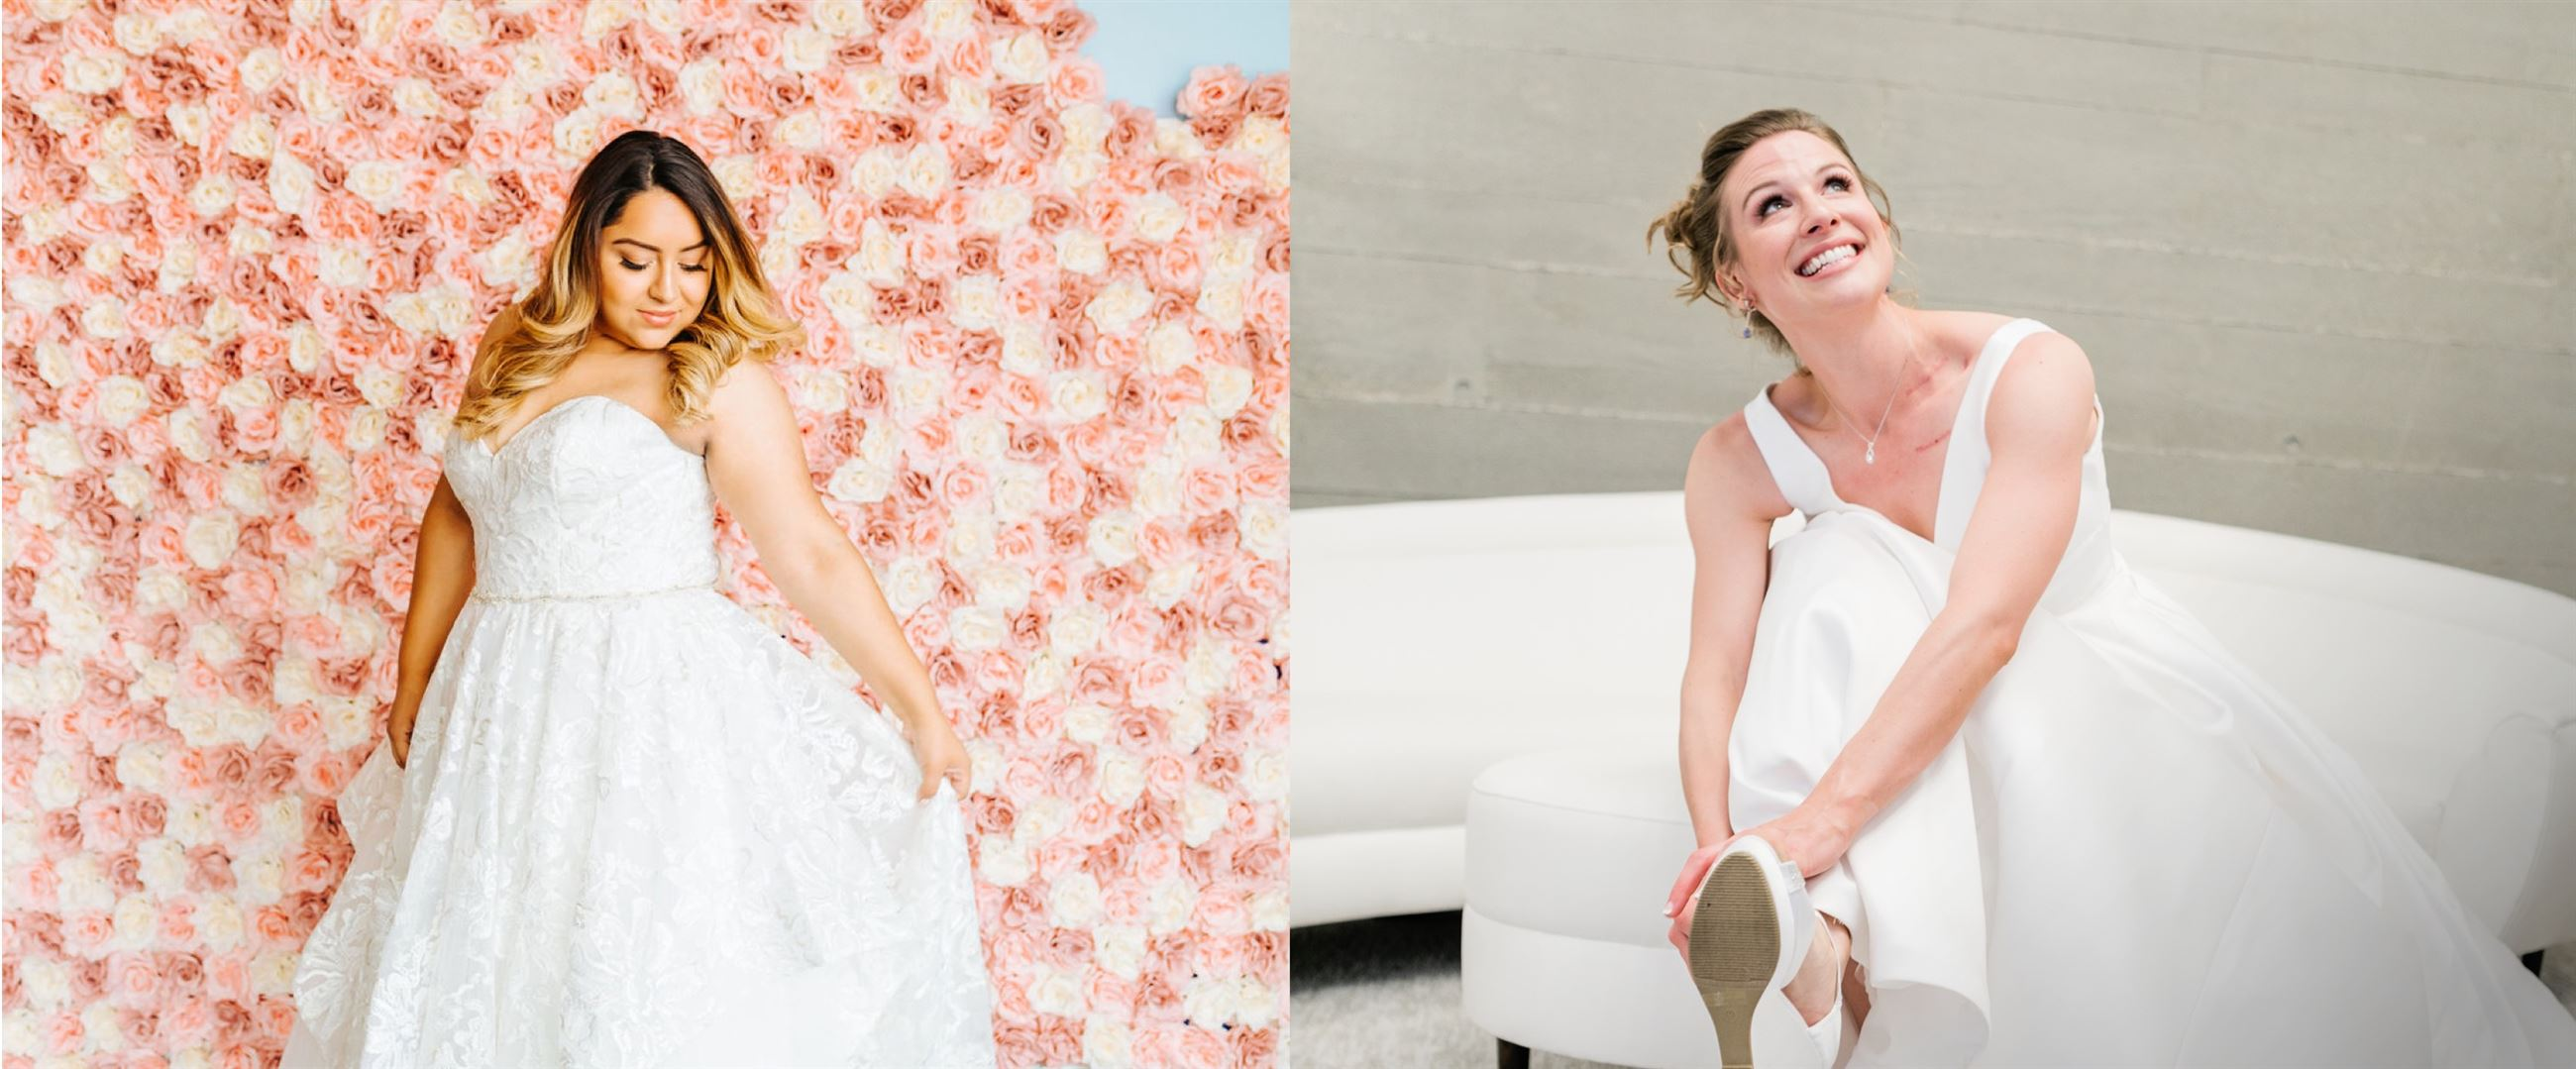 Two images side by side of two models wearing a white wedding dress